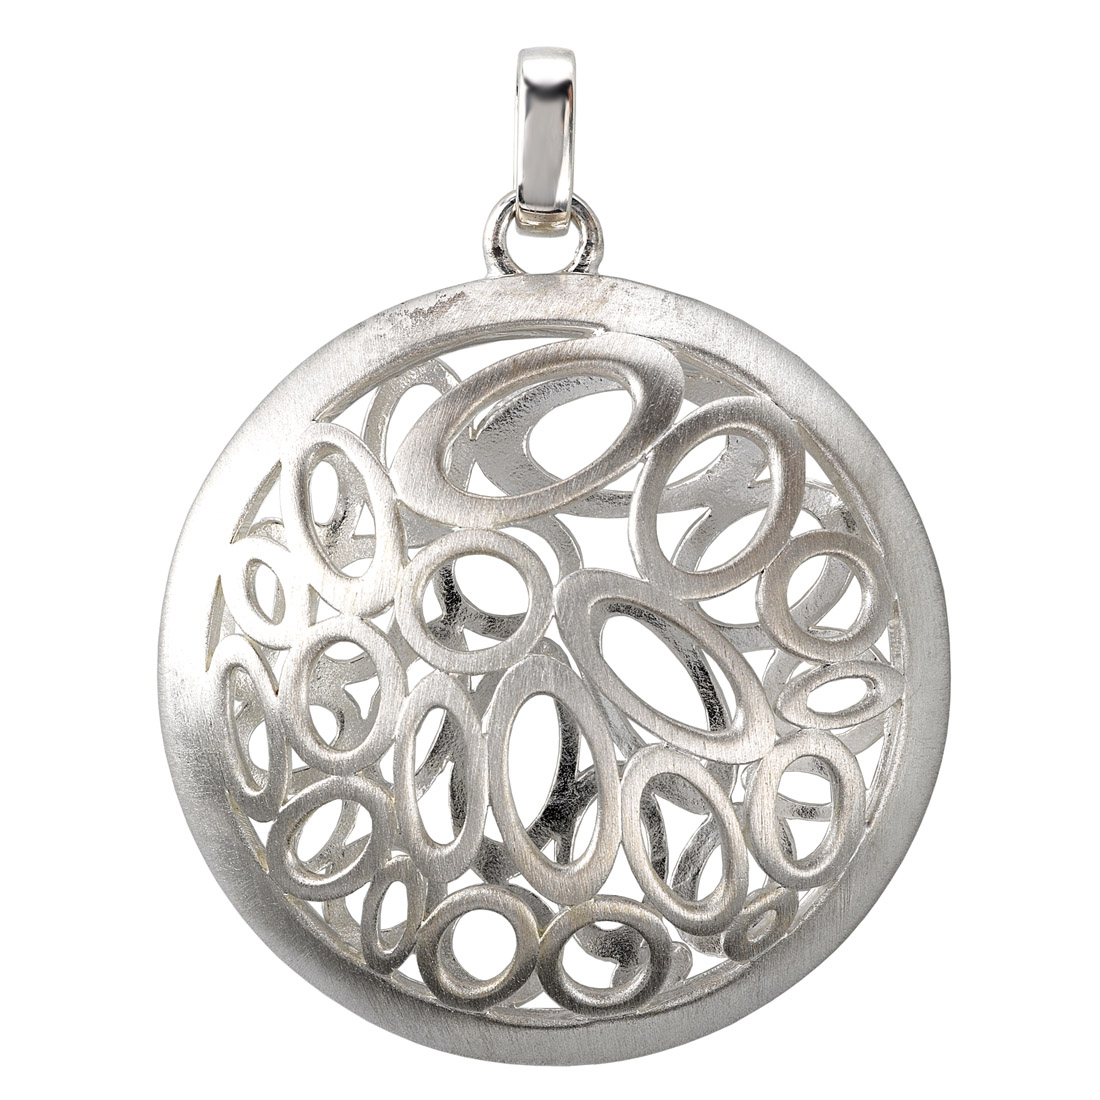 Round Domed Pendant with Oval Cutouts